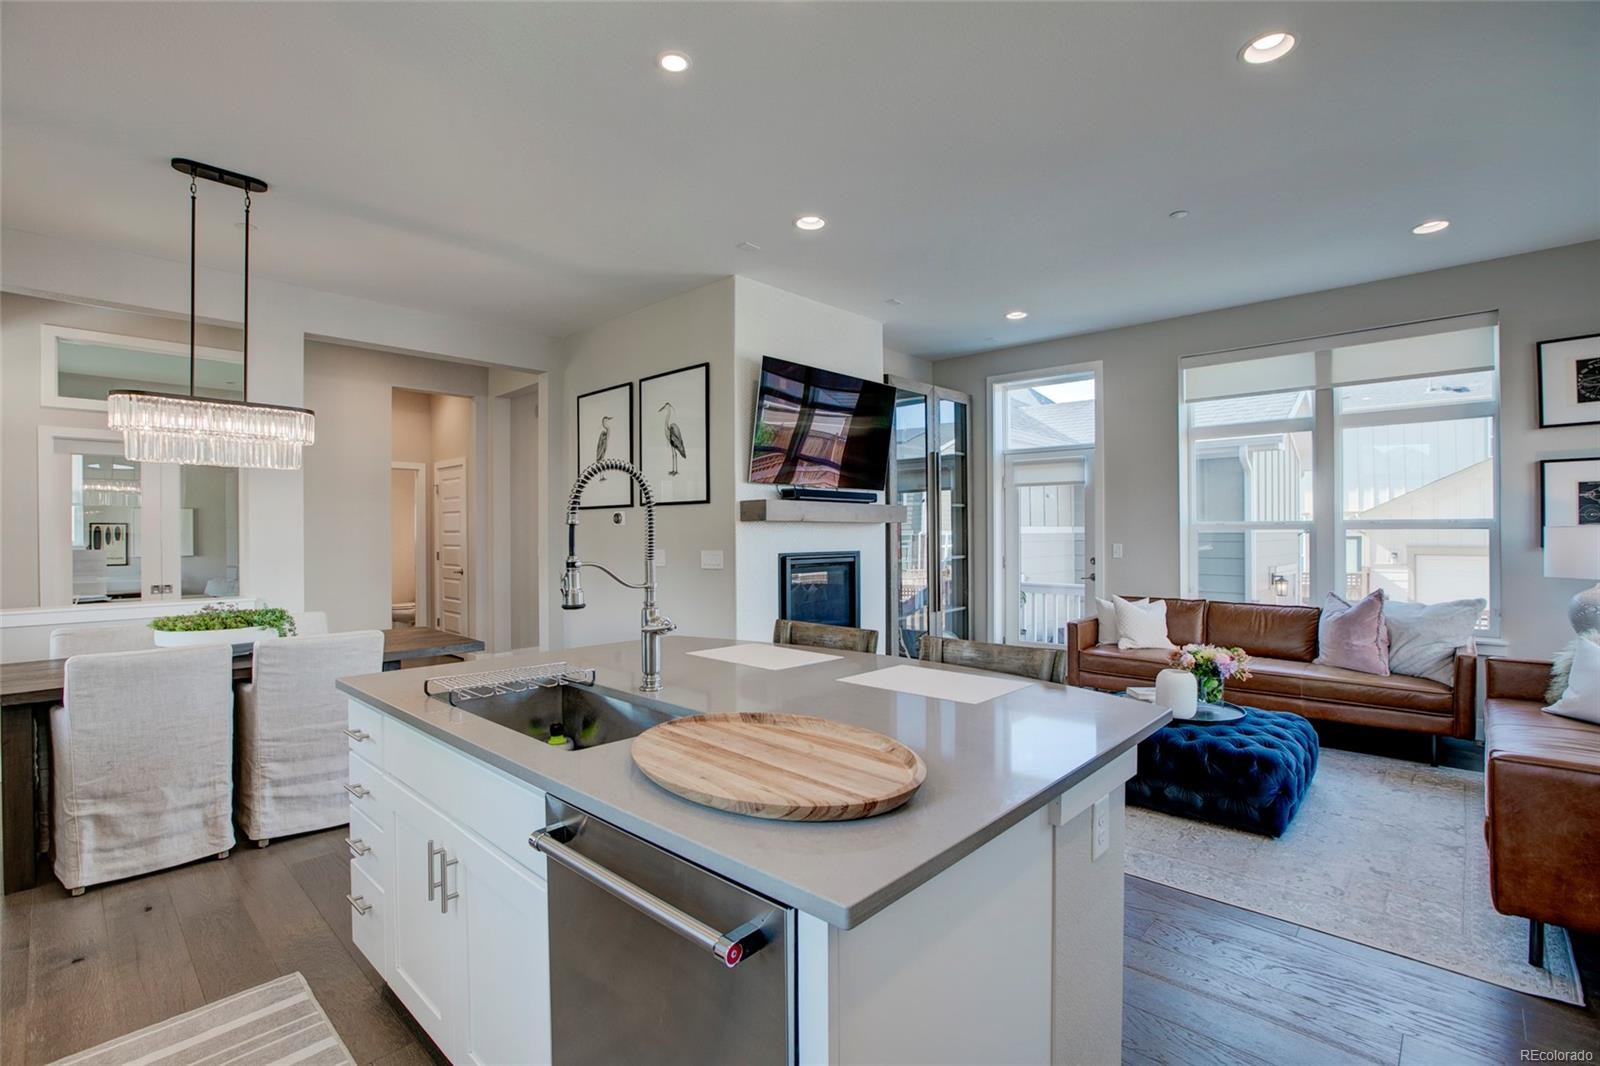 MLS# 1577922 - 13 - 5527 W 97th Court, Westminster, CO 80020